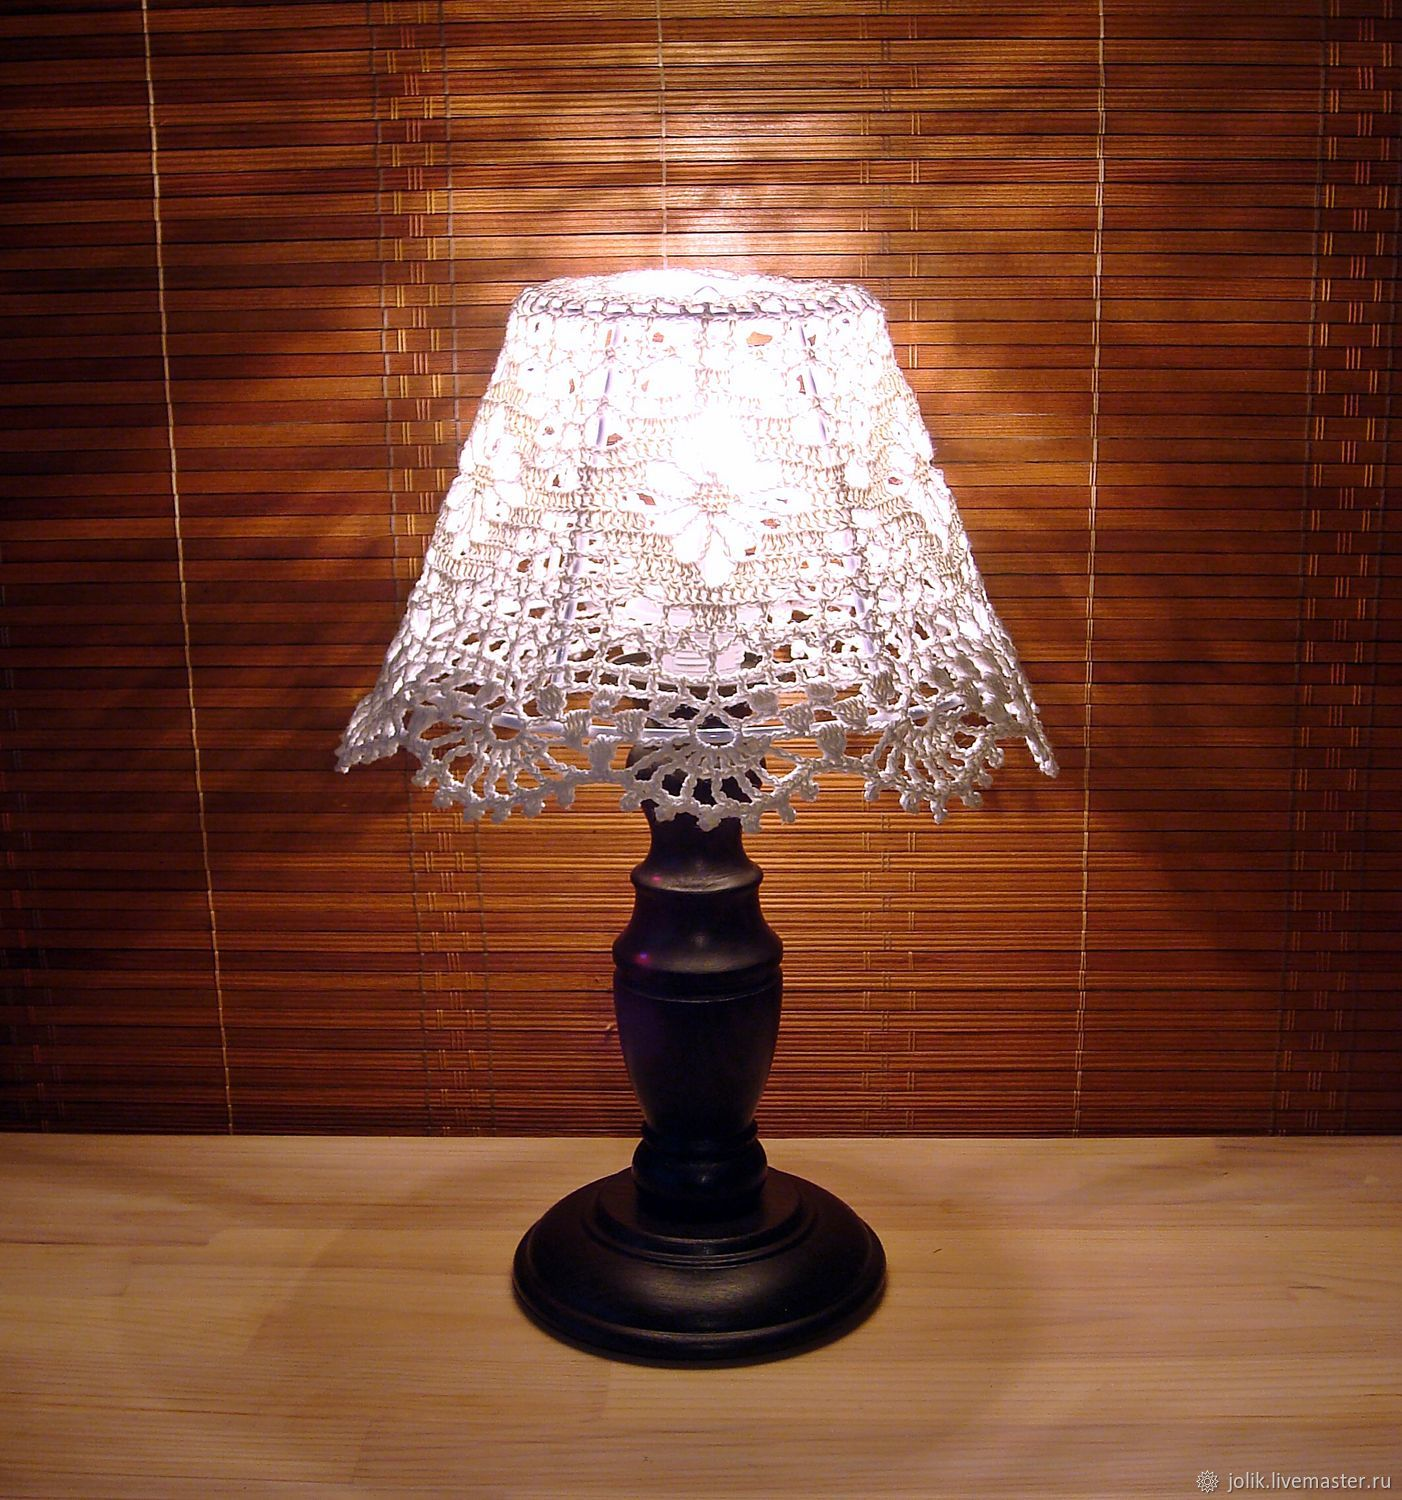 Lampshade handmade for a small table lamp or night lamp shop lace house lampshade handmade table lamp lampshade for a table lamp night light shade for mozeypictures Images